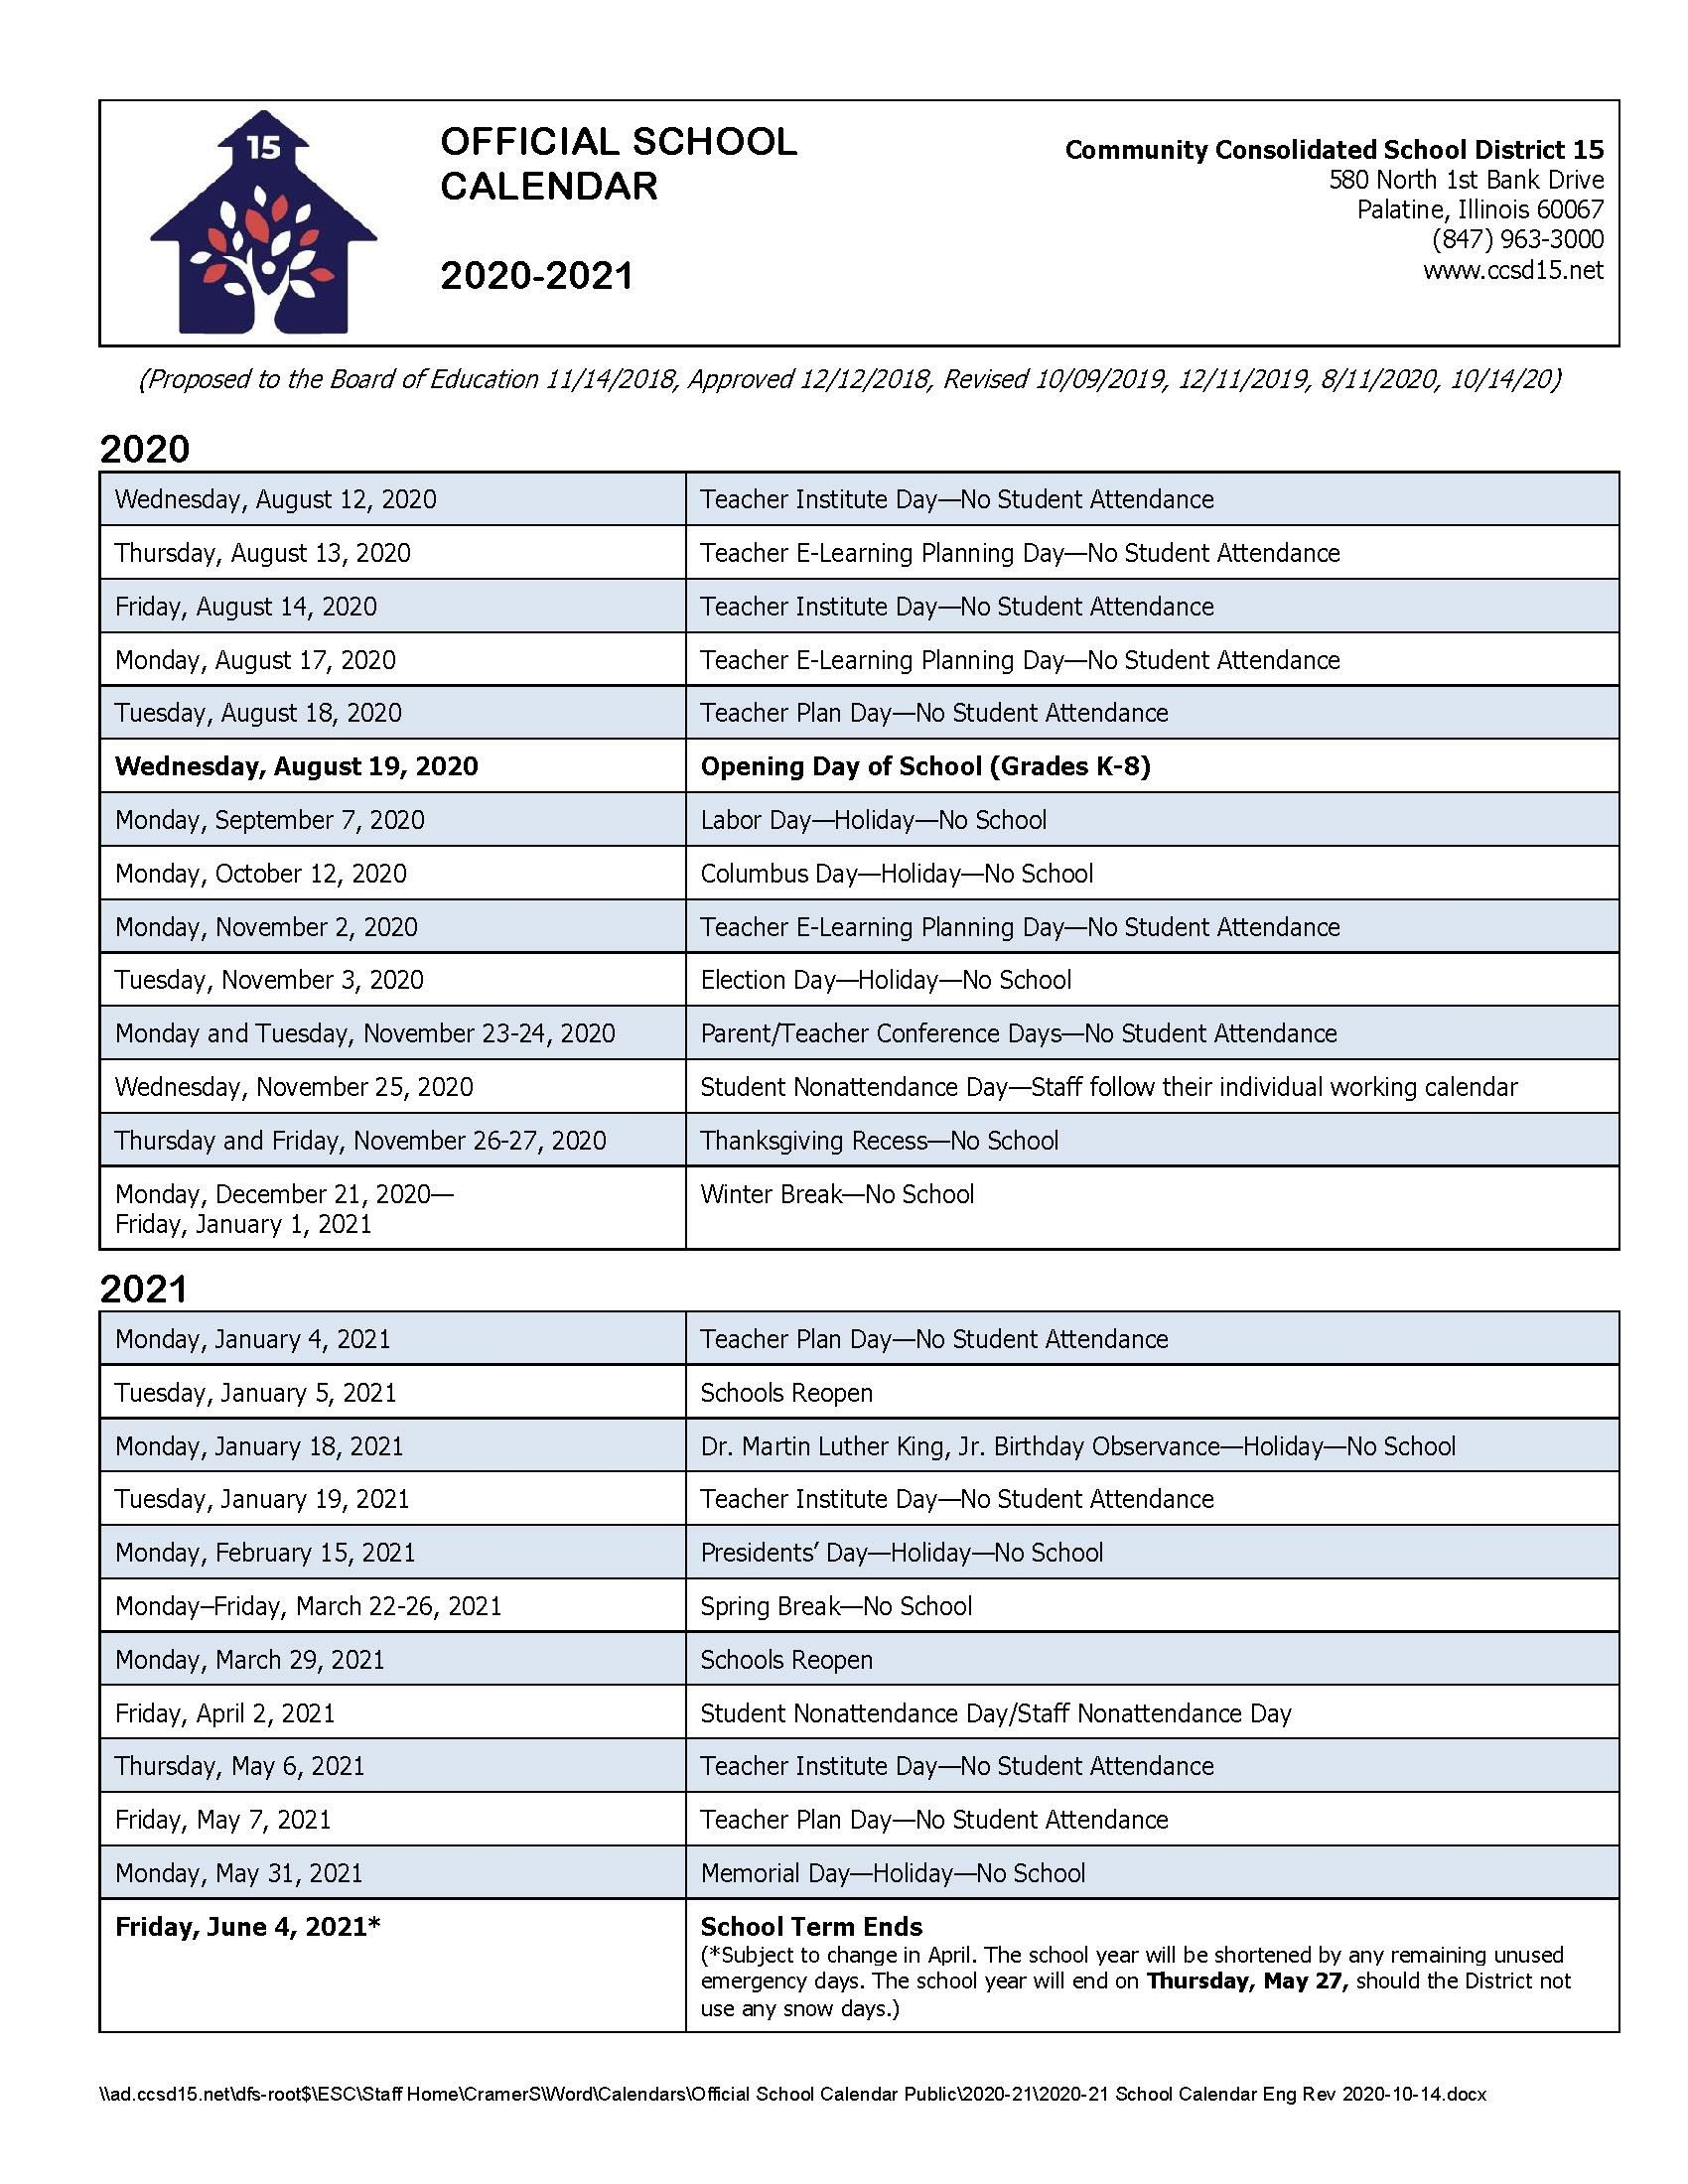 Jordan School District 2021-22 Calendar Wallpaper